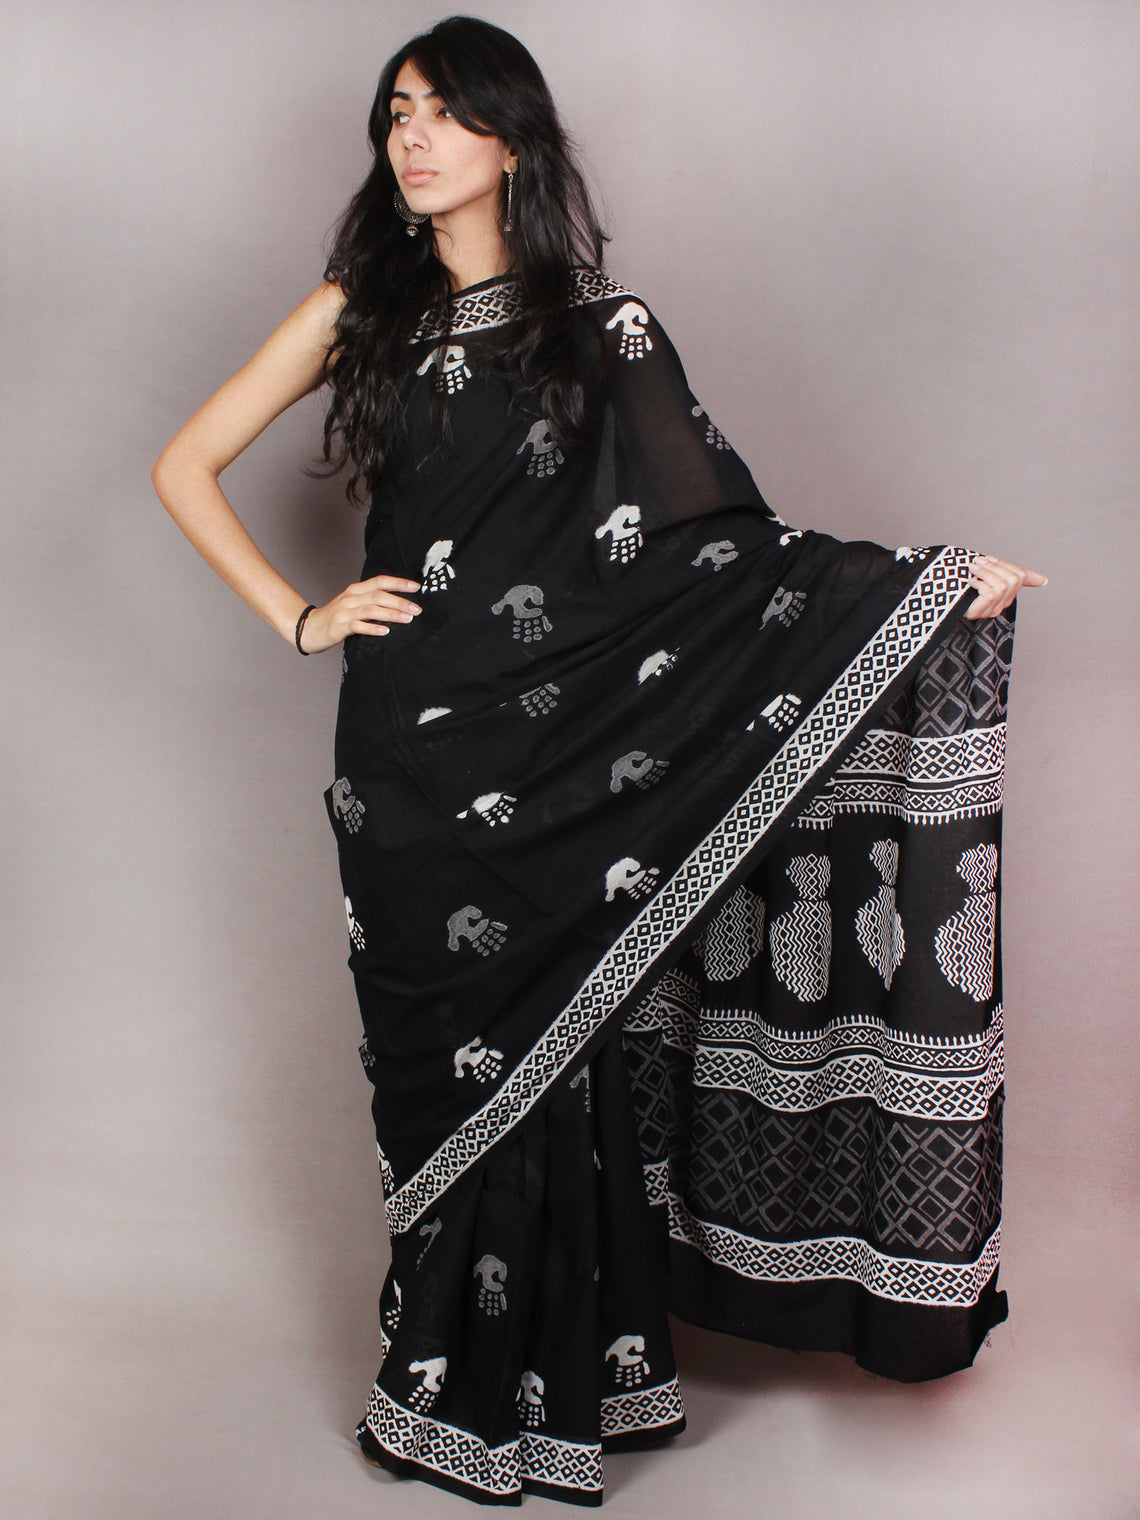 Black White Hand Block Printed in Natural Colors Cotton Mul Saree - S03170793